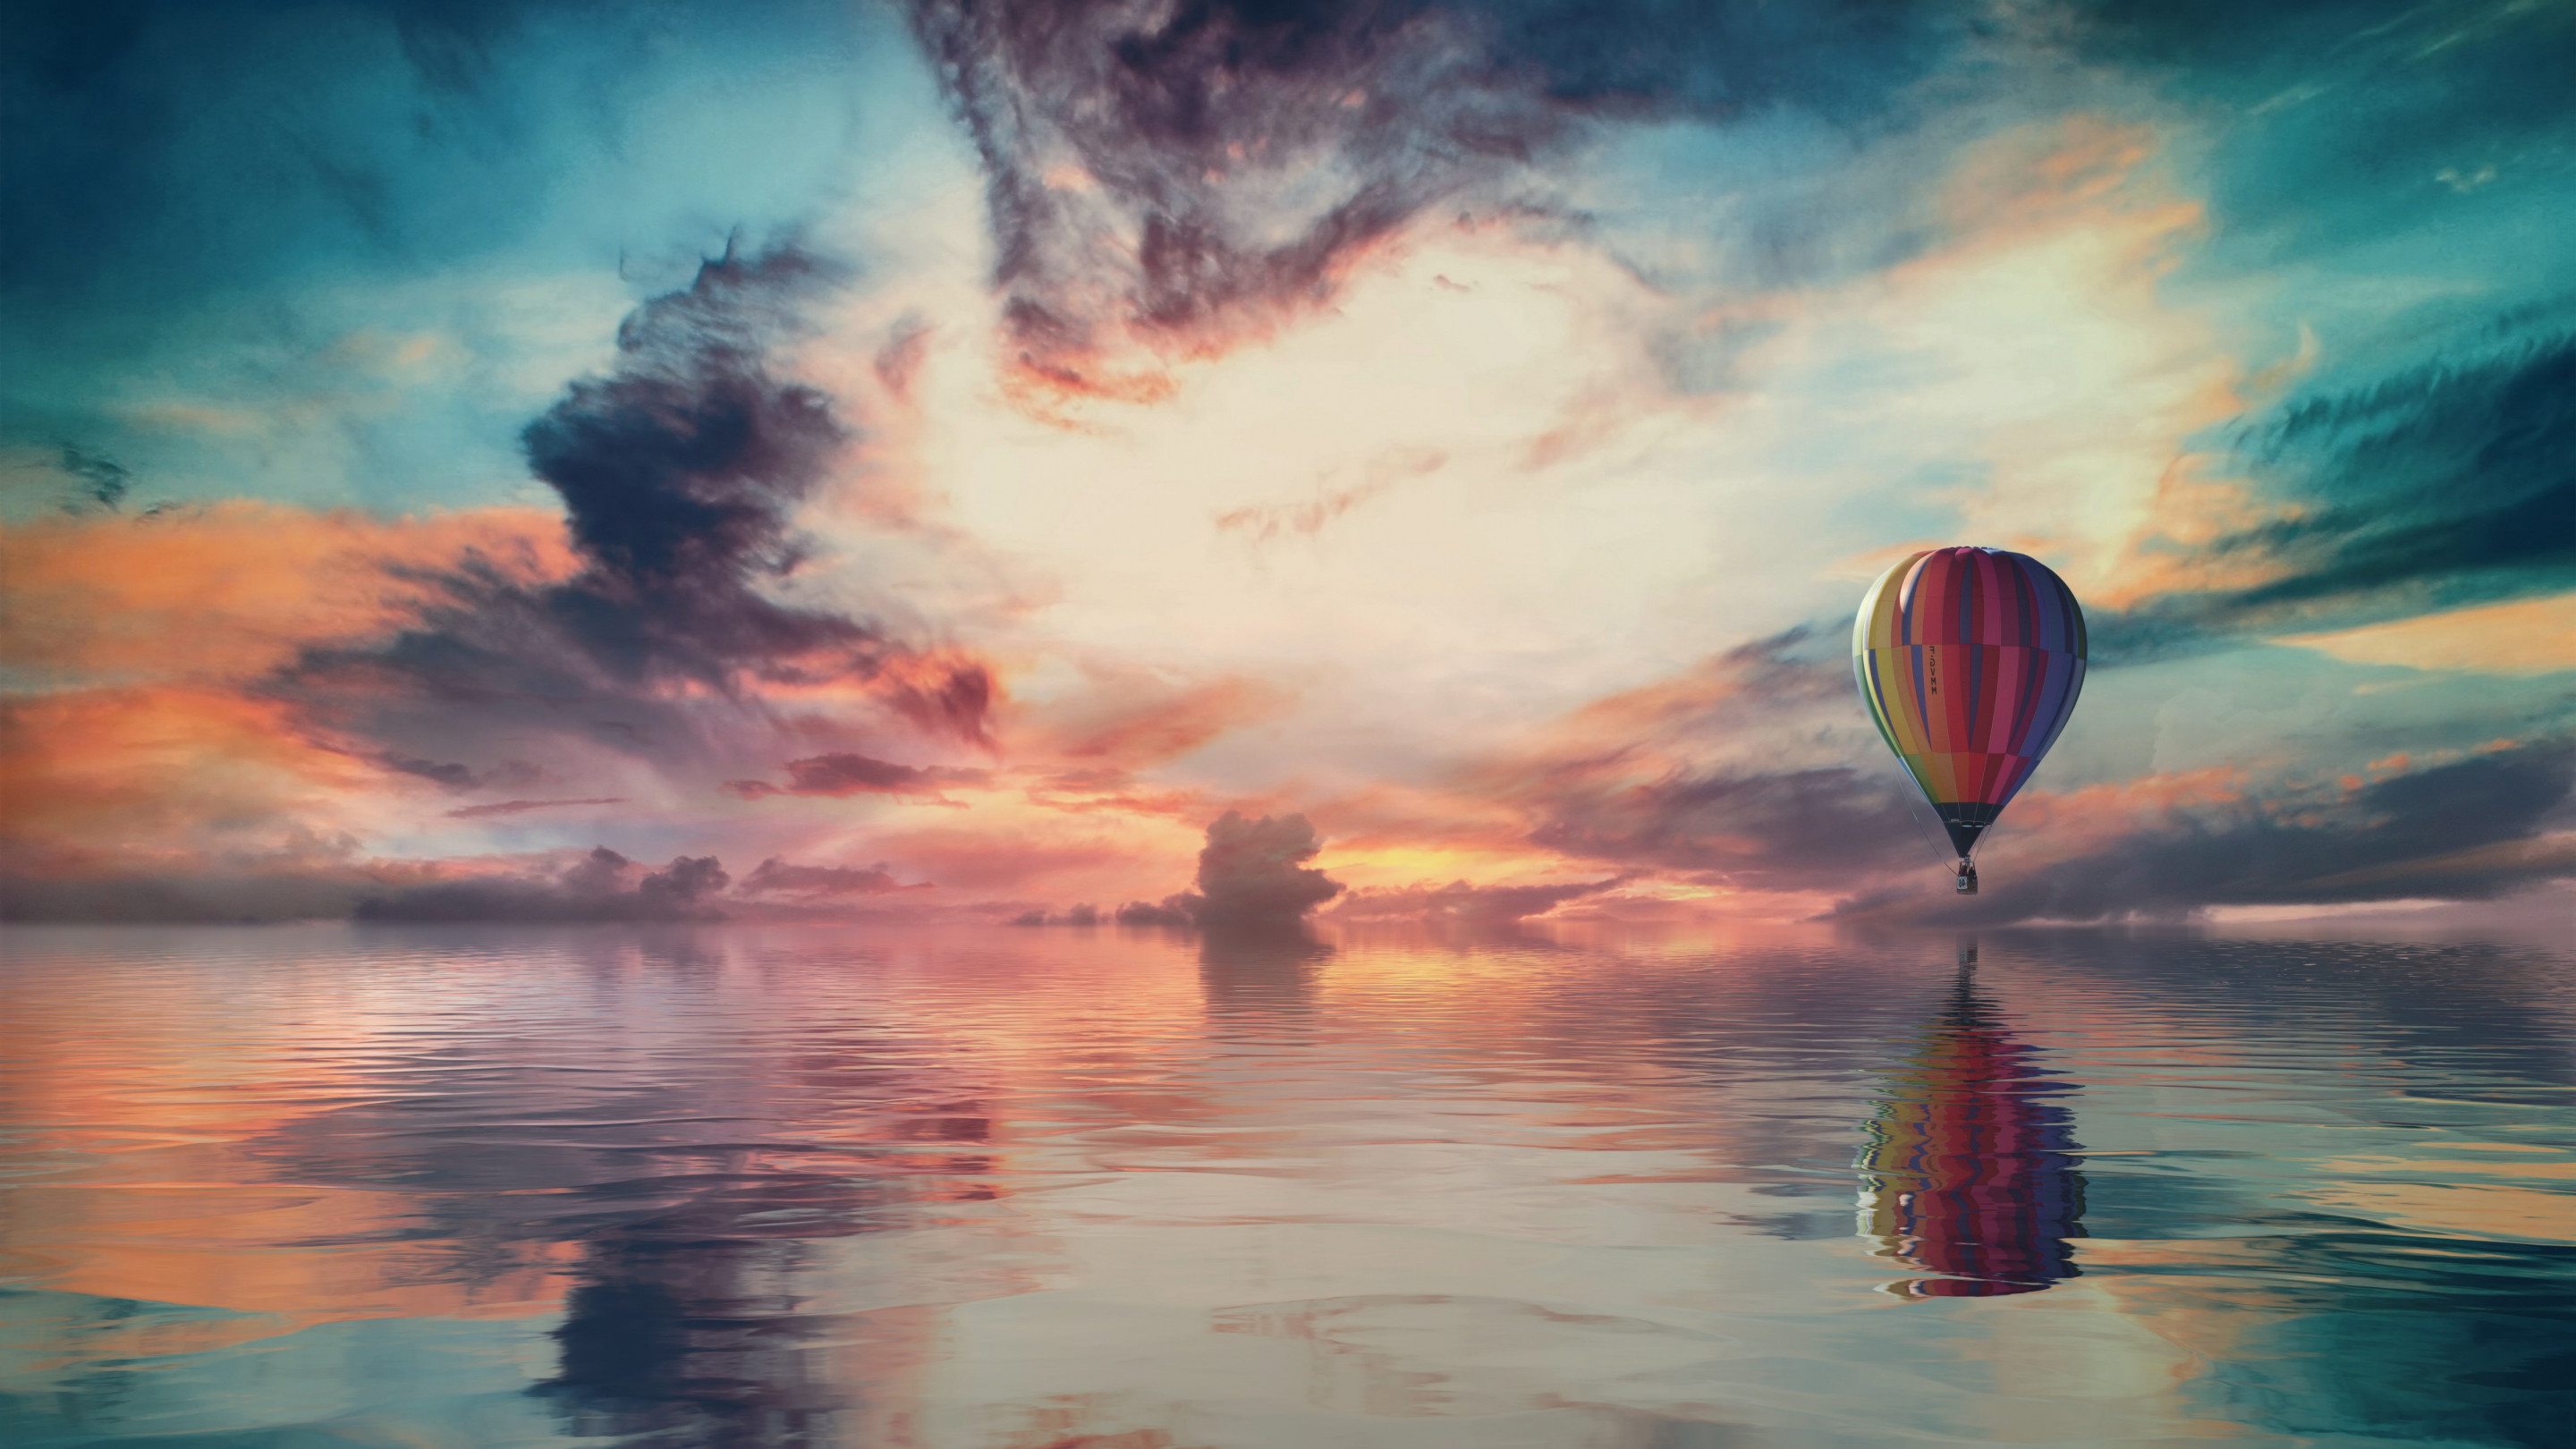 Fantasy travel with the hot air balloon wallpaper 2880x1620